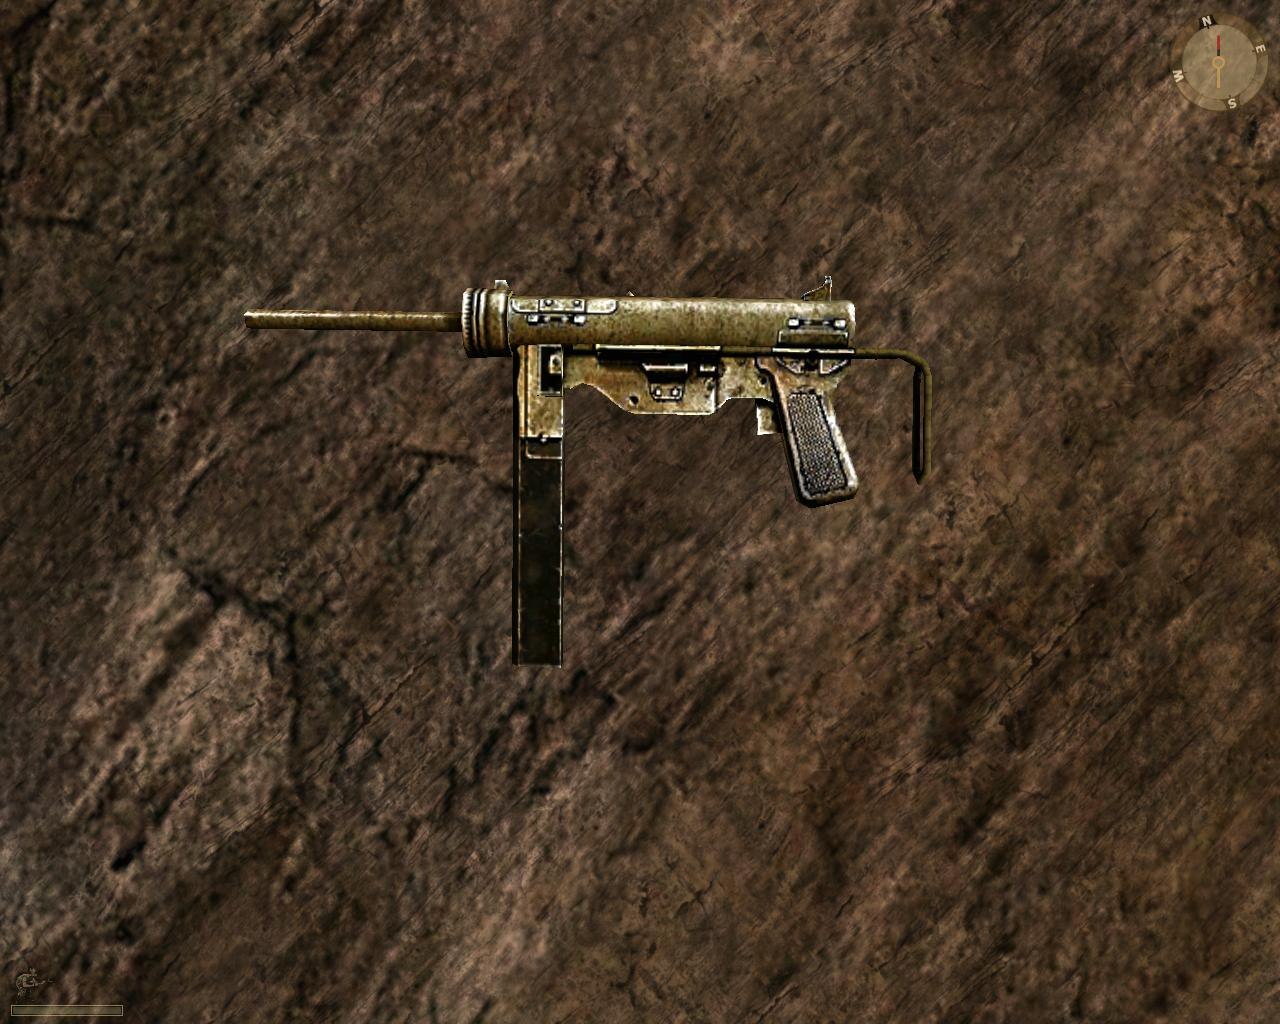 http://www.imfdb.org/images/a/a7/Vietcong_m3_grease_gun_world.jpg